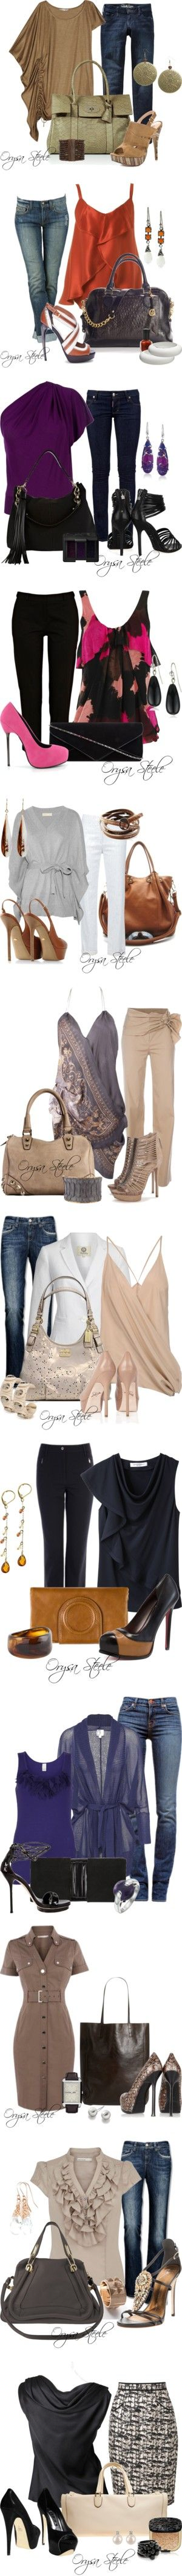 some cute outfits--though I'd prefer the heels a little less sky-high. :)